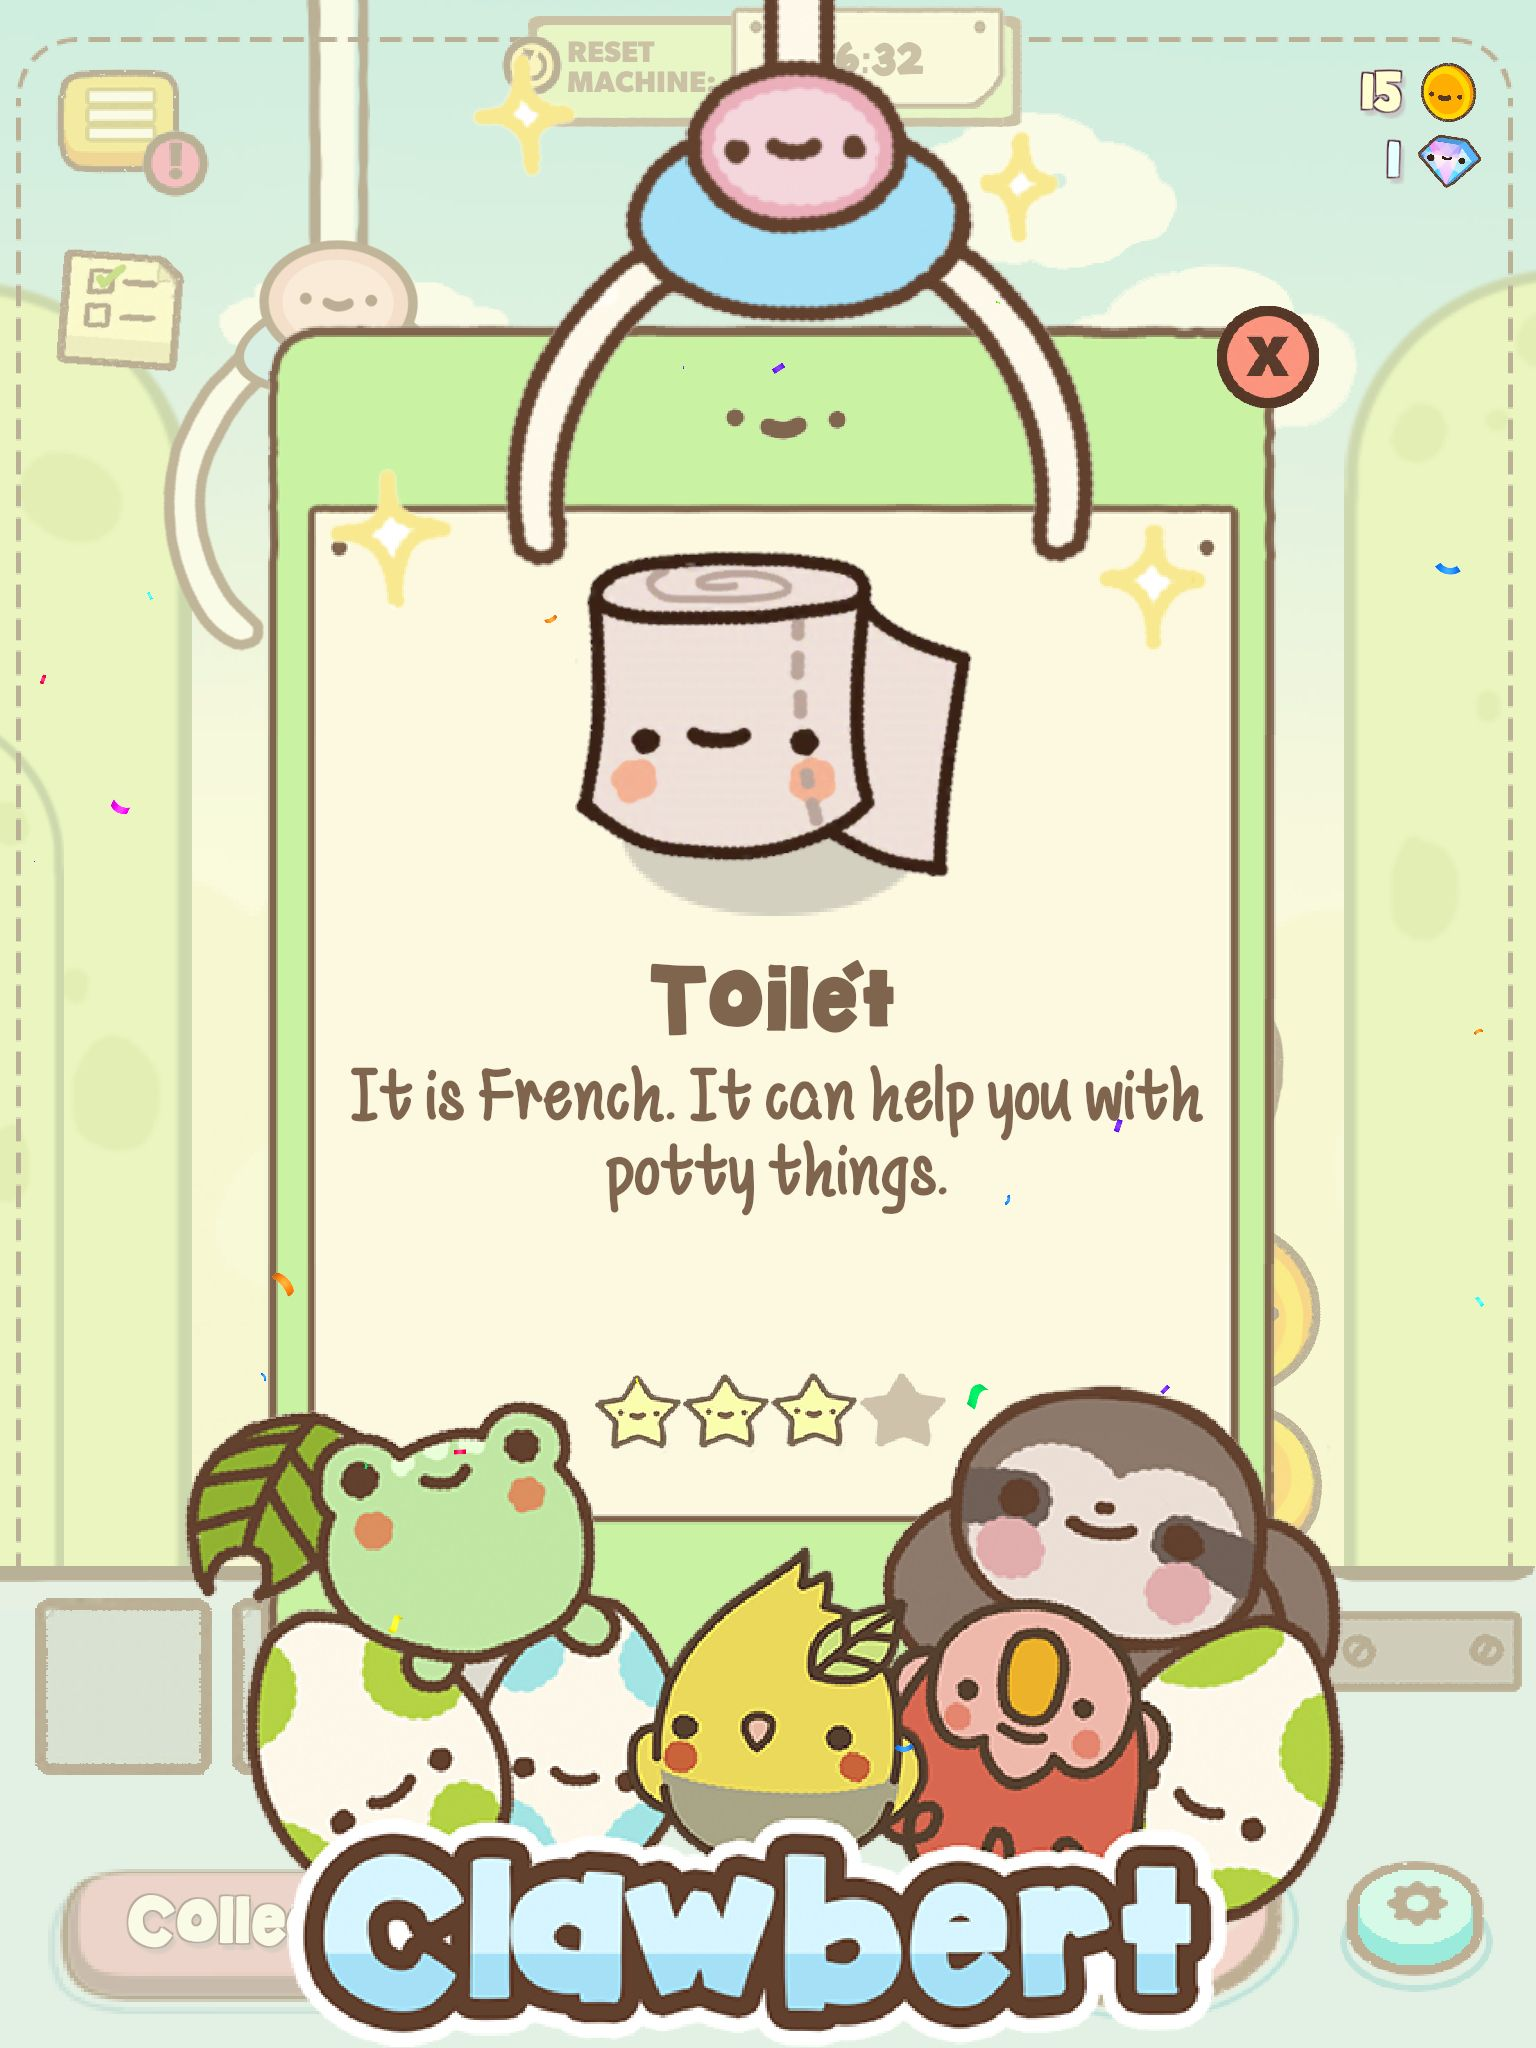 Look What I Found With Clawbertgame Clawbert